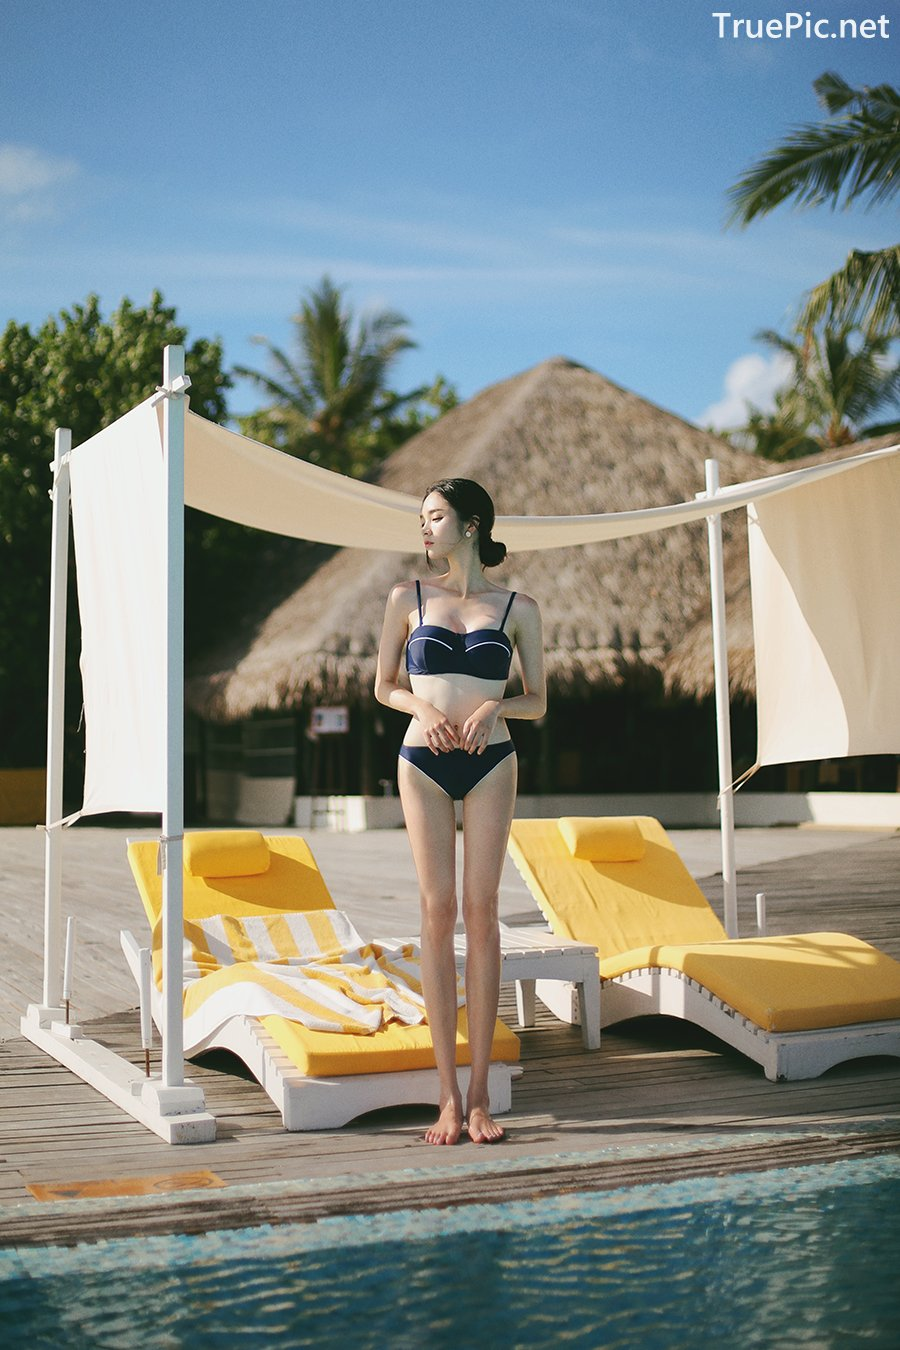 Image Korean Fashion Model - Jeong Hee - Bikini That Stained My Heart - TruePic.net - Picture-9